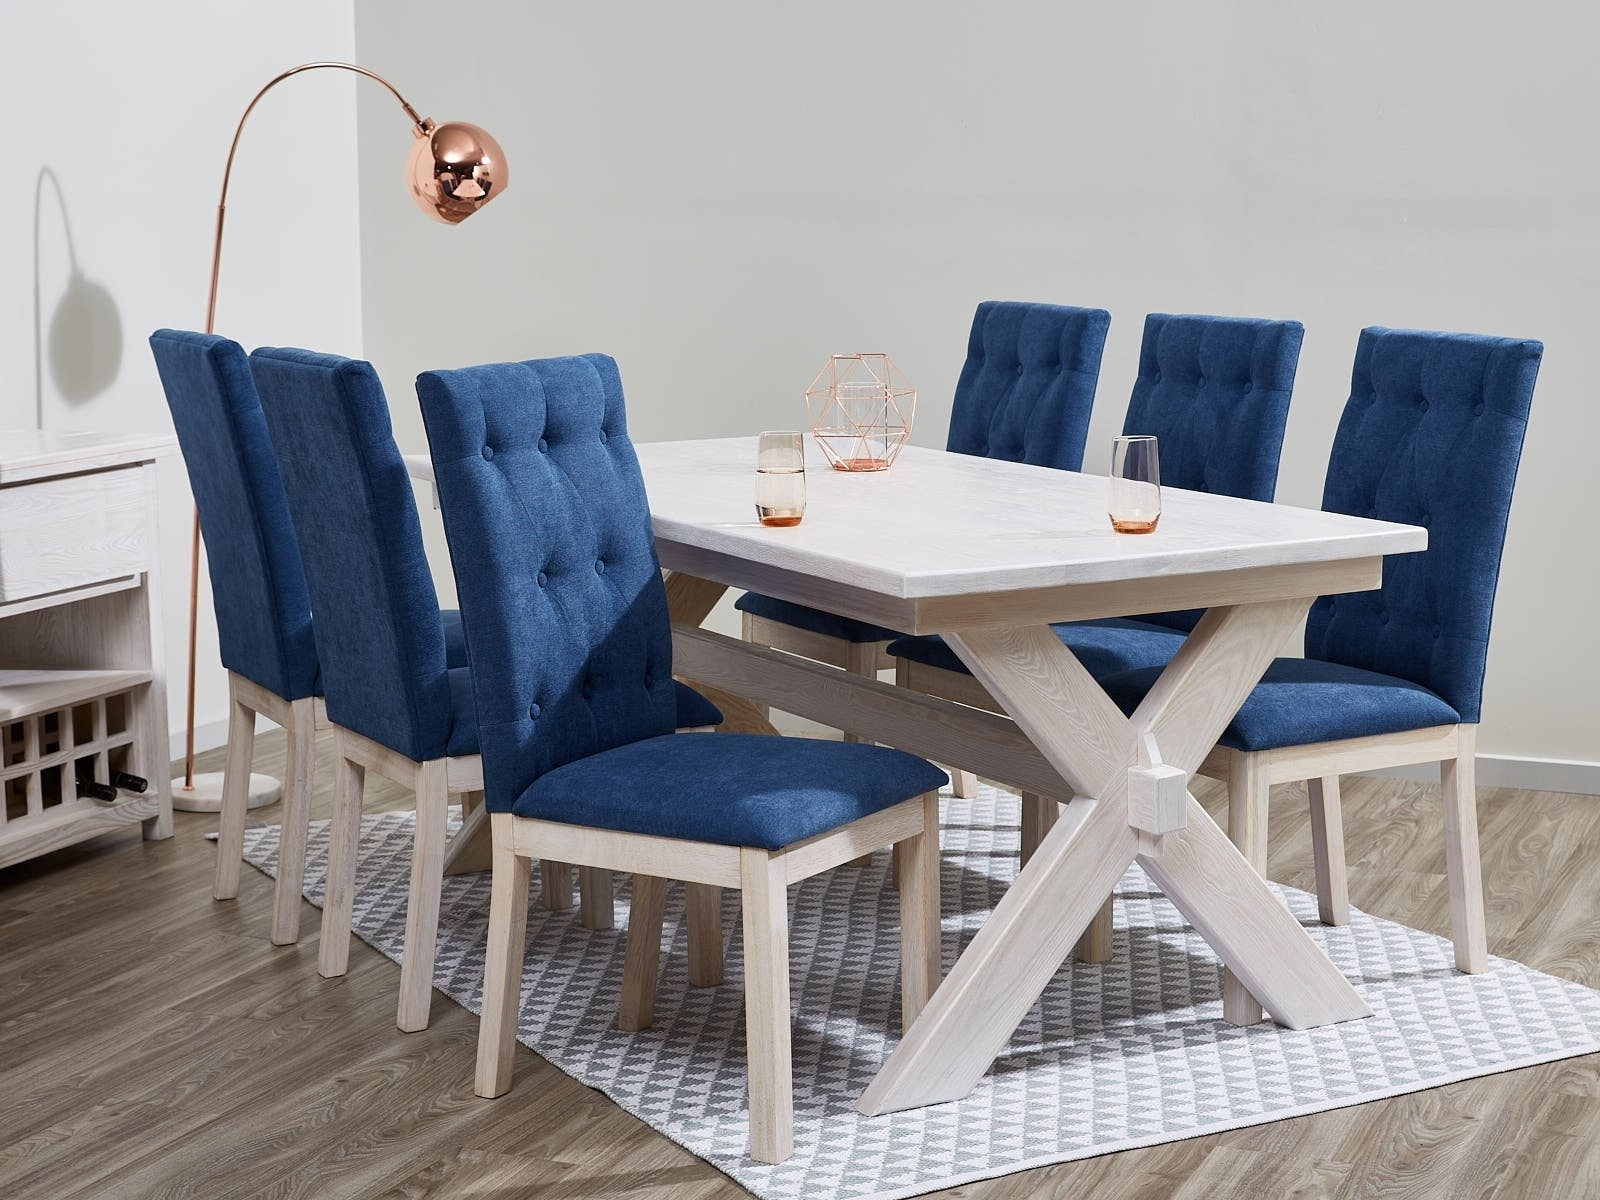 Fantastic Dining Sets On Sale With Upholstered Chairs & Whitewash Intended For Well Known Blue Dining Tables (View 13 of 25)